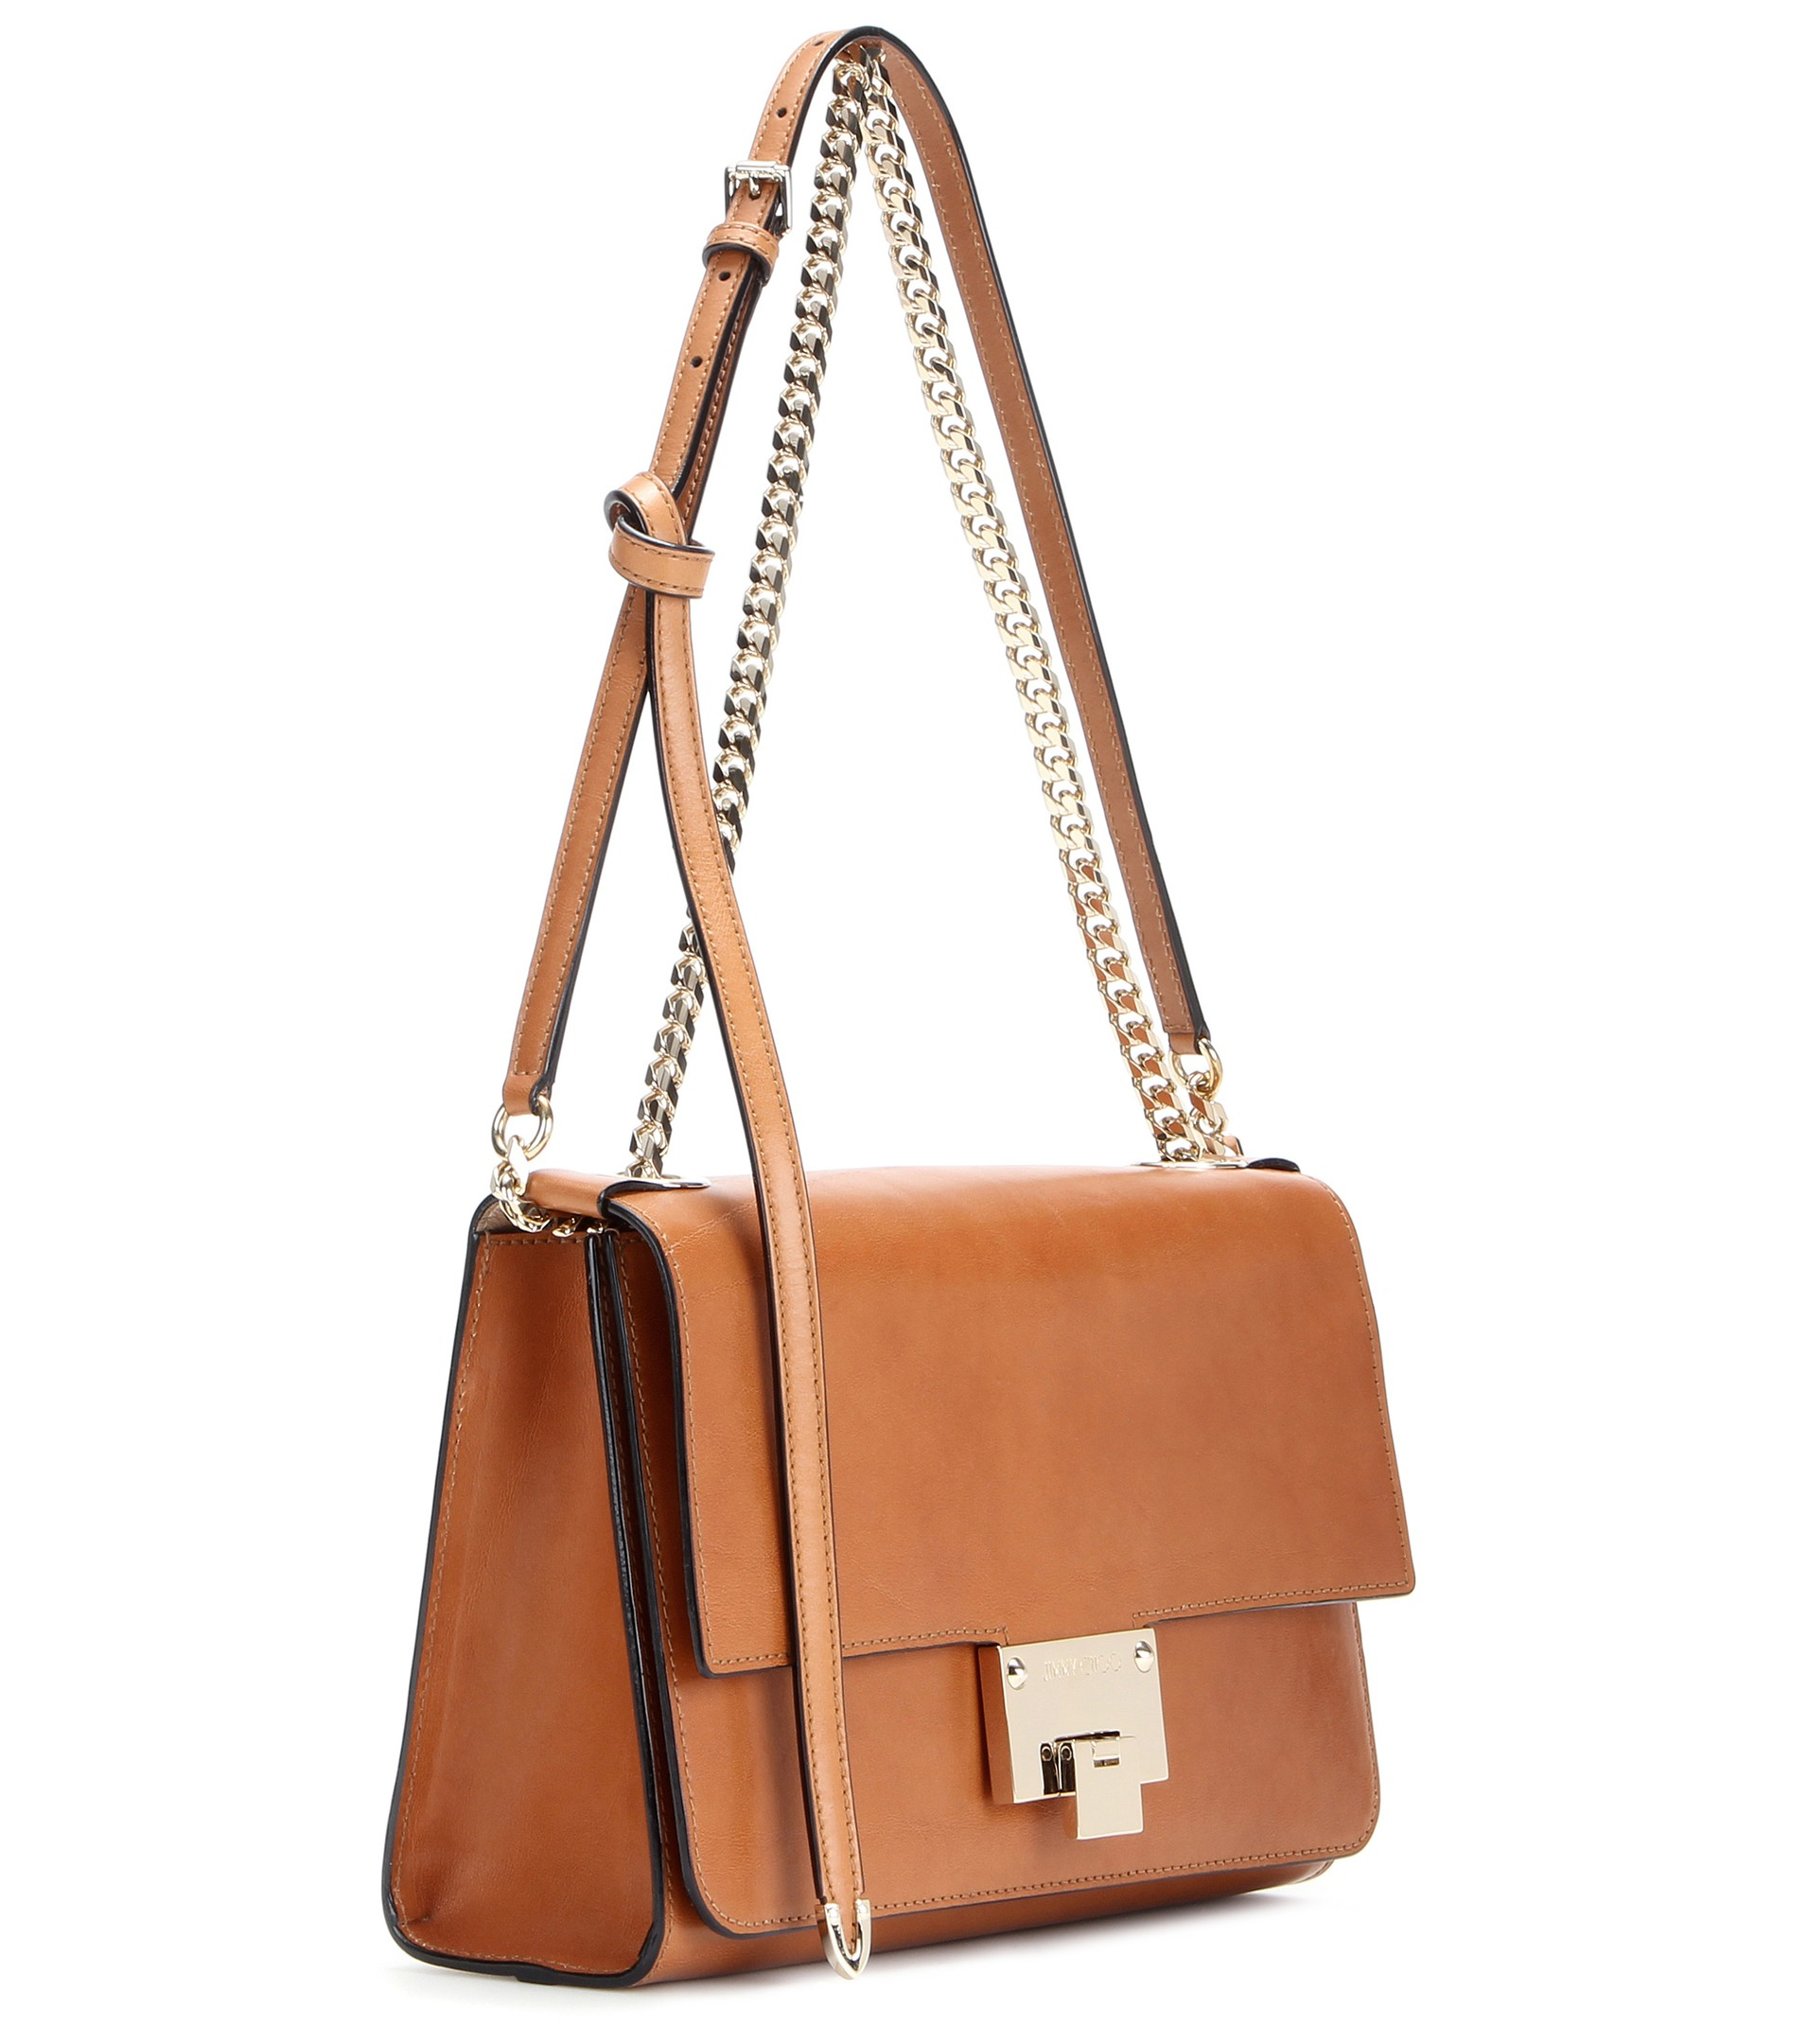 Jimmy choo Rebel Soft Leather Shoulder Bag in Brown | Lyst